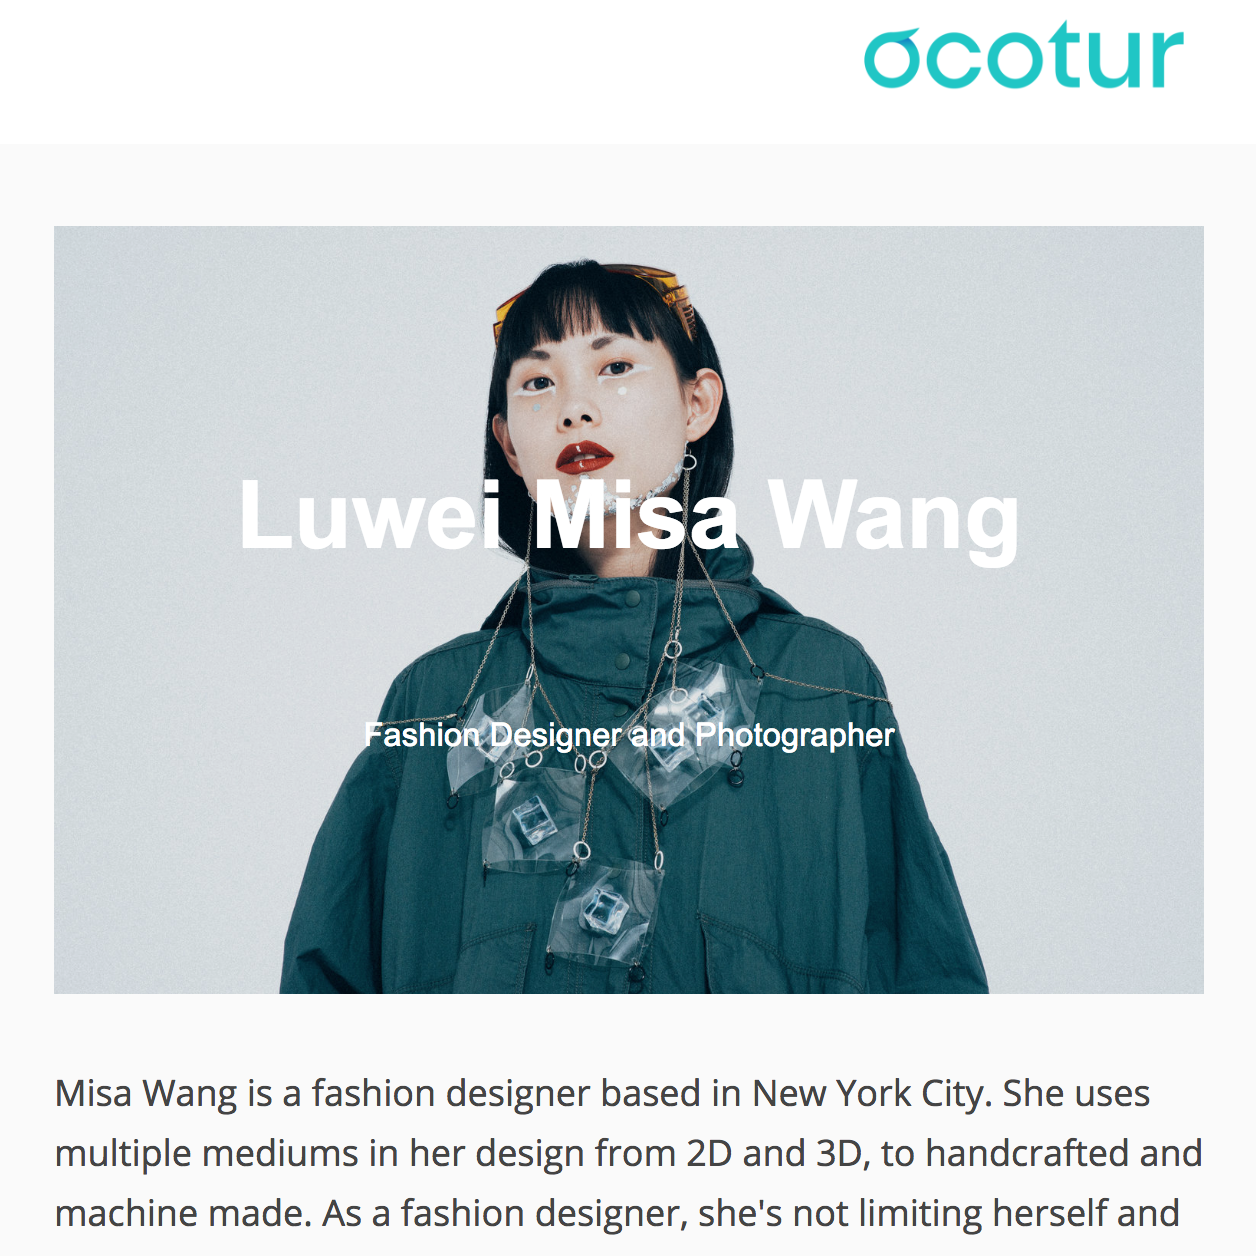 OCOTUR Magazine   Interview with OCOTUR Magazine. Jun 2018   http://editorial.ocotur.com/editorial/luwei-misa-wang